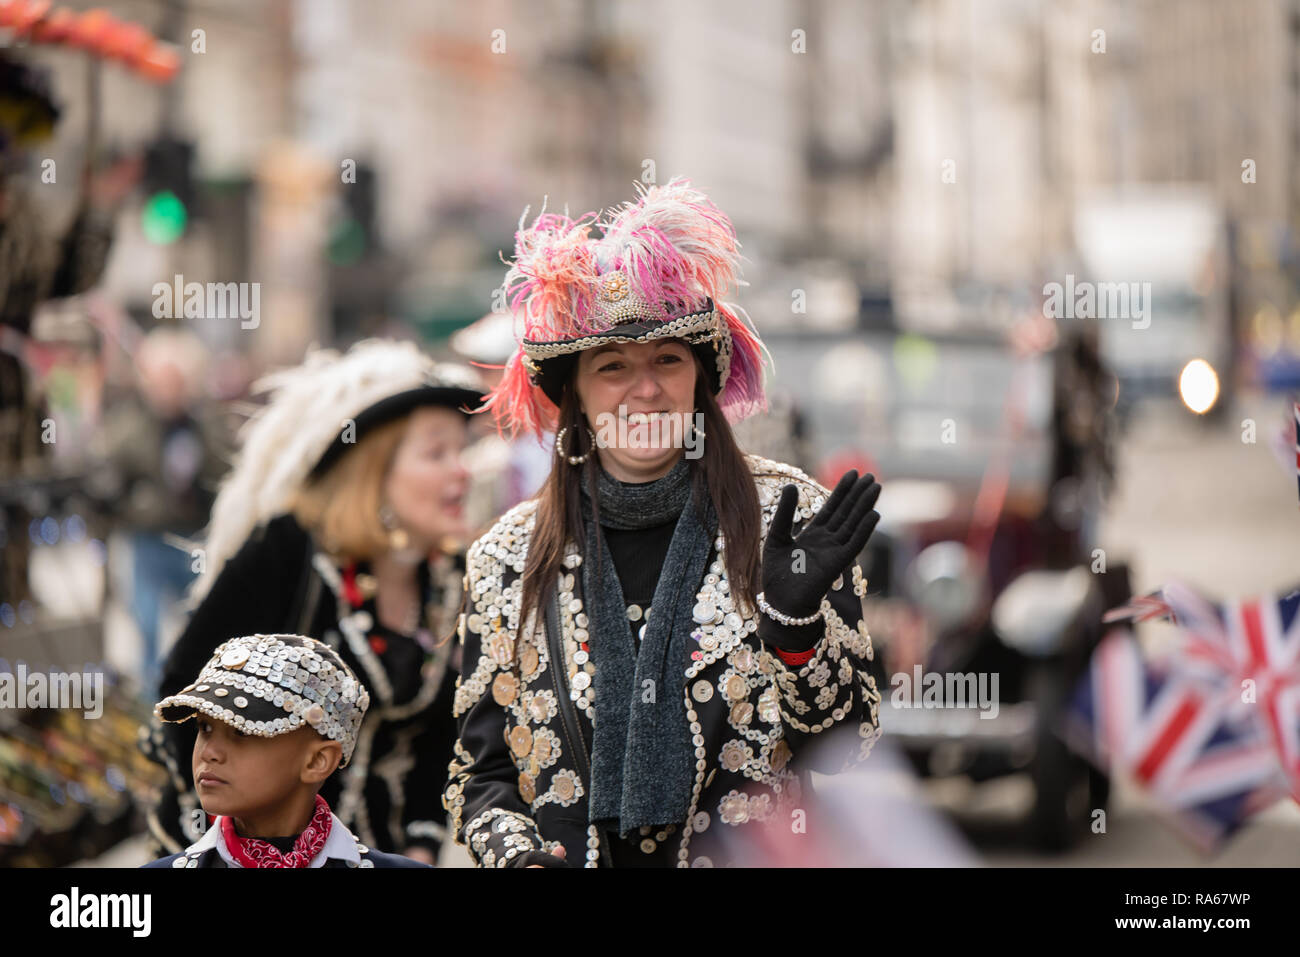 "London, UK.  1 January 2019.   The theme of the parade this year was ""London Welcomes the World"". With thousands of performers from a multitude of different countries and cultures from all around the world parade through central  London. Acts included the London Pearly Kings and Queens Society.  Credit: Ilyas Ayub / Alamy Live News - Stock Image"